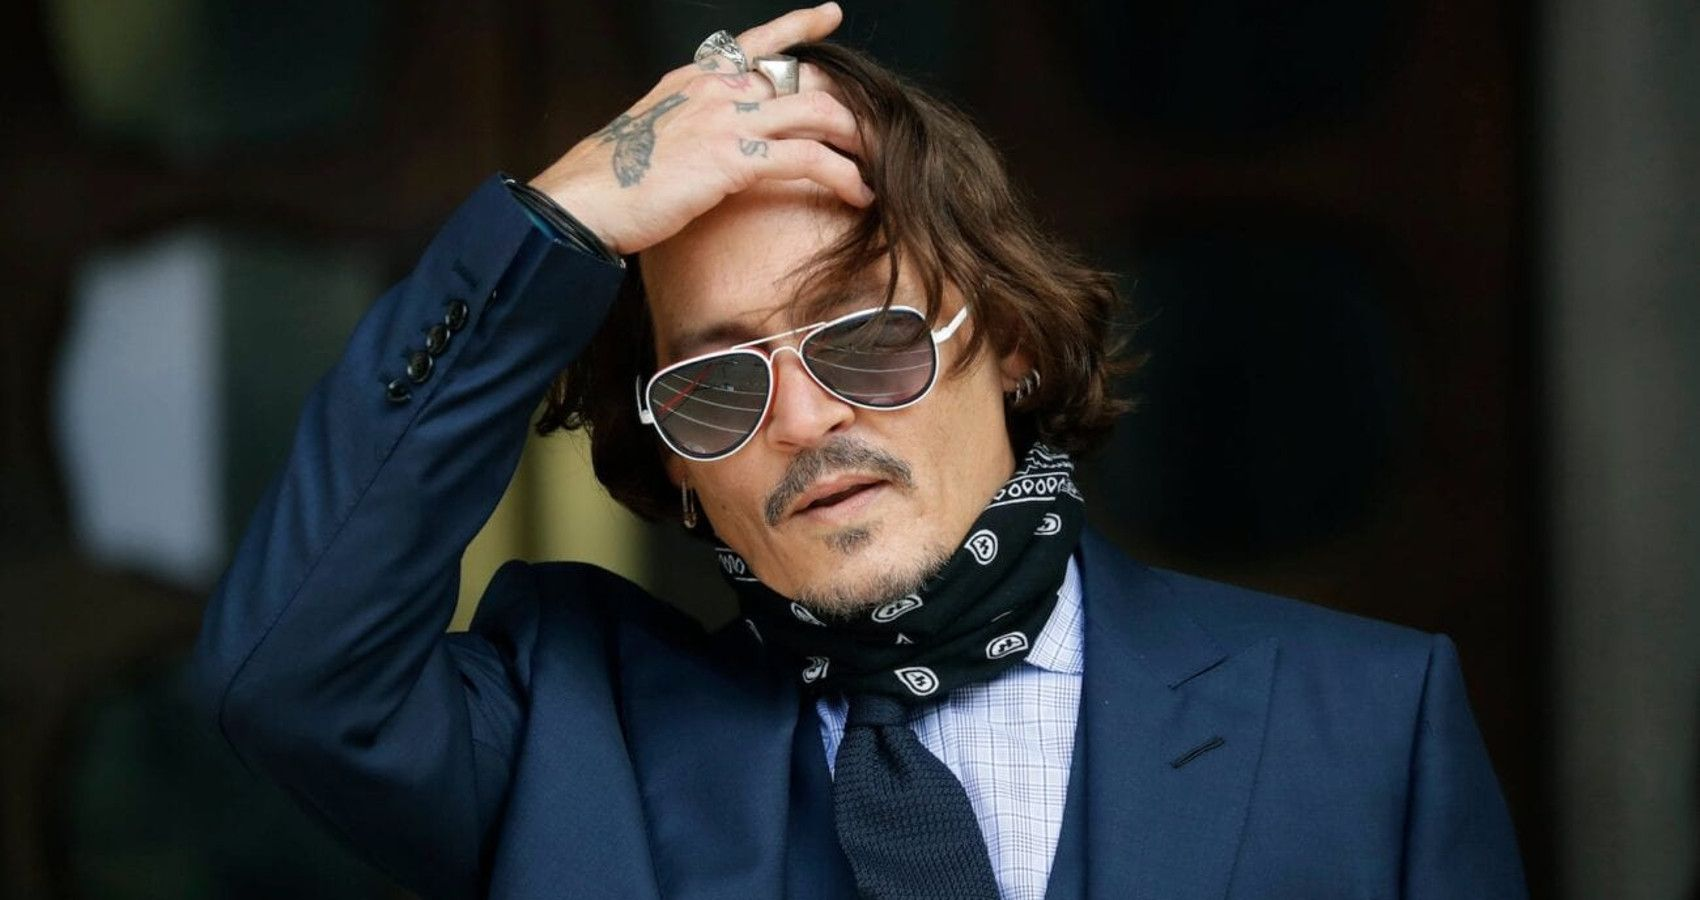 Women Can Be Abusive: What We Can Learn And Teach From Amber Heard & Johnny Depp's Relationship